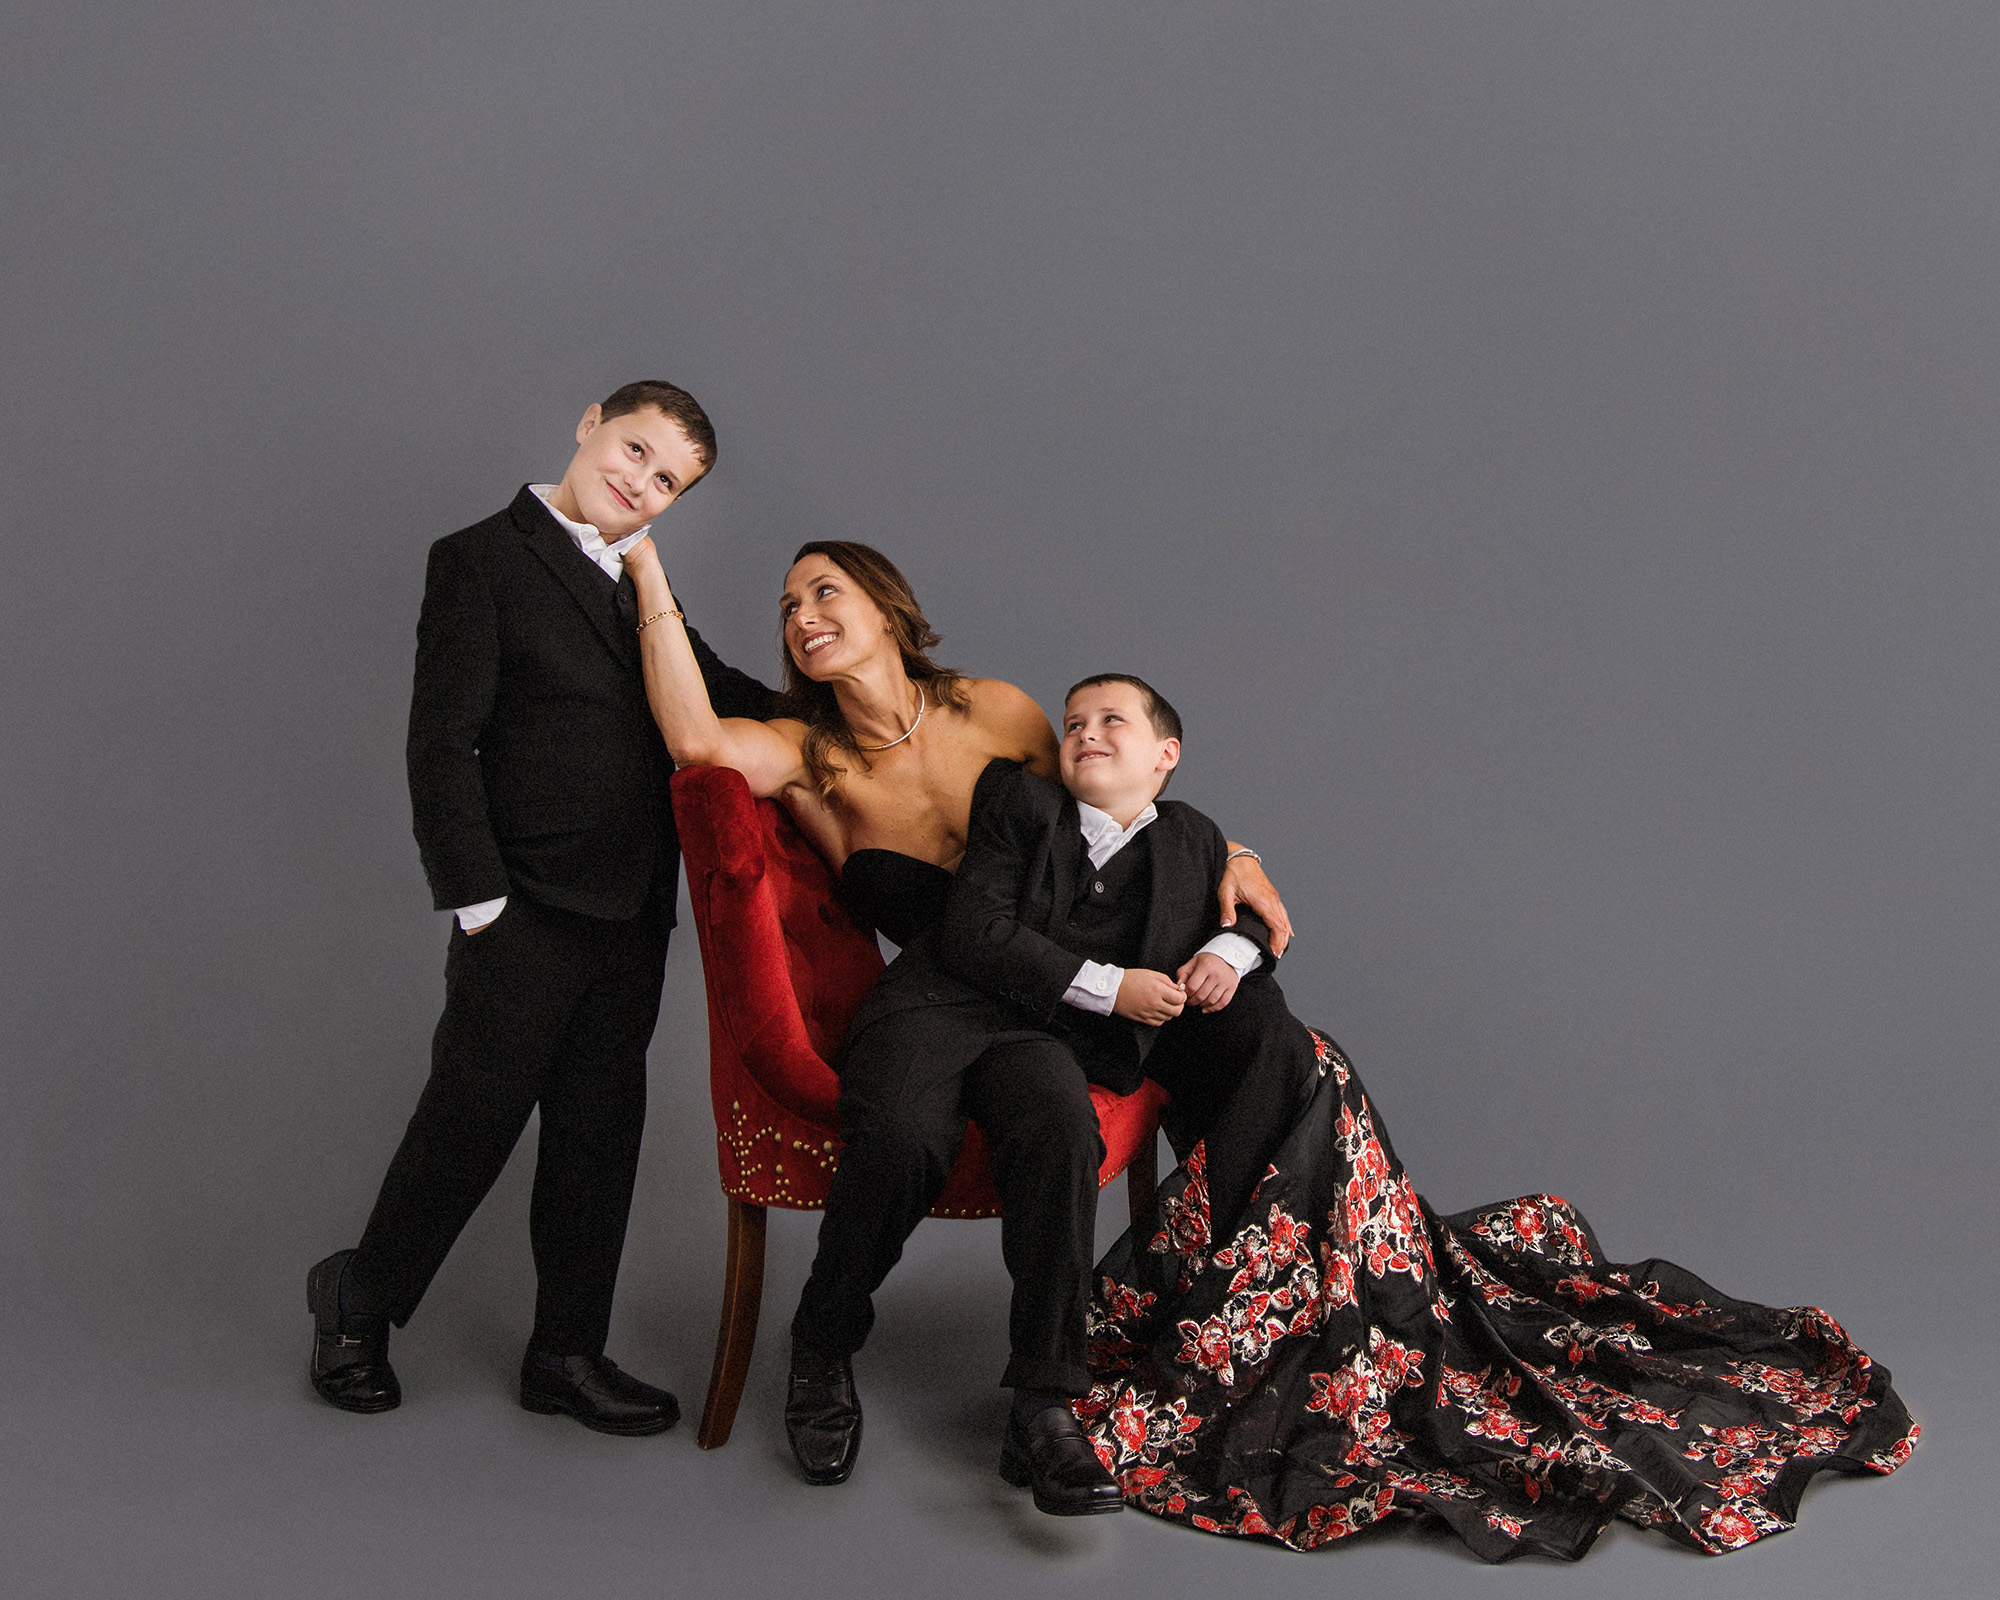 Studio B Portraits_Formal Family pictures of Mom in red gown with twin boys in suit_Warshaw_4143e.jpg